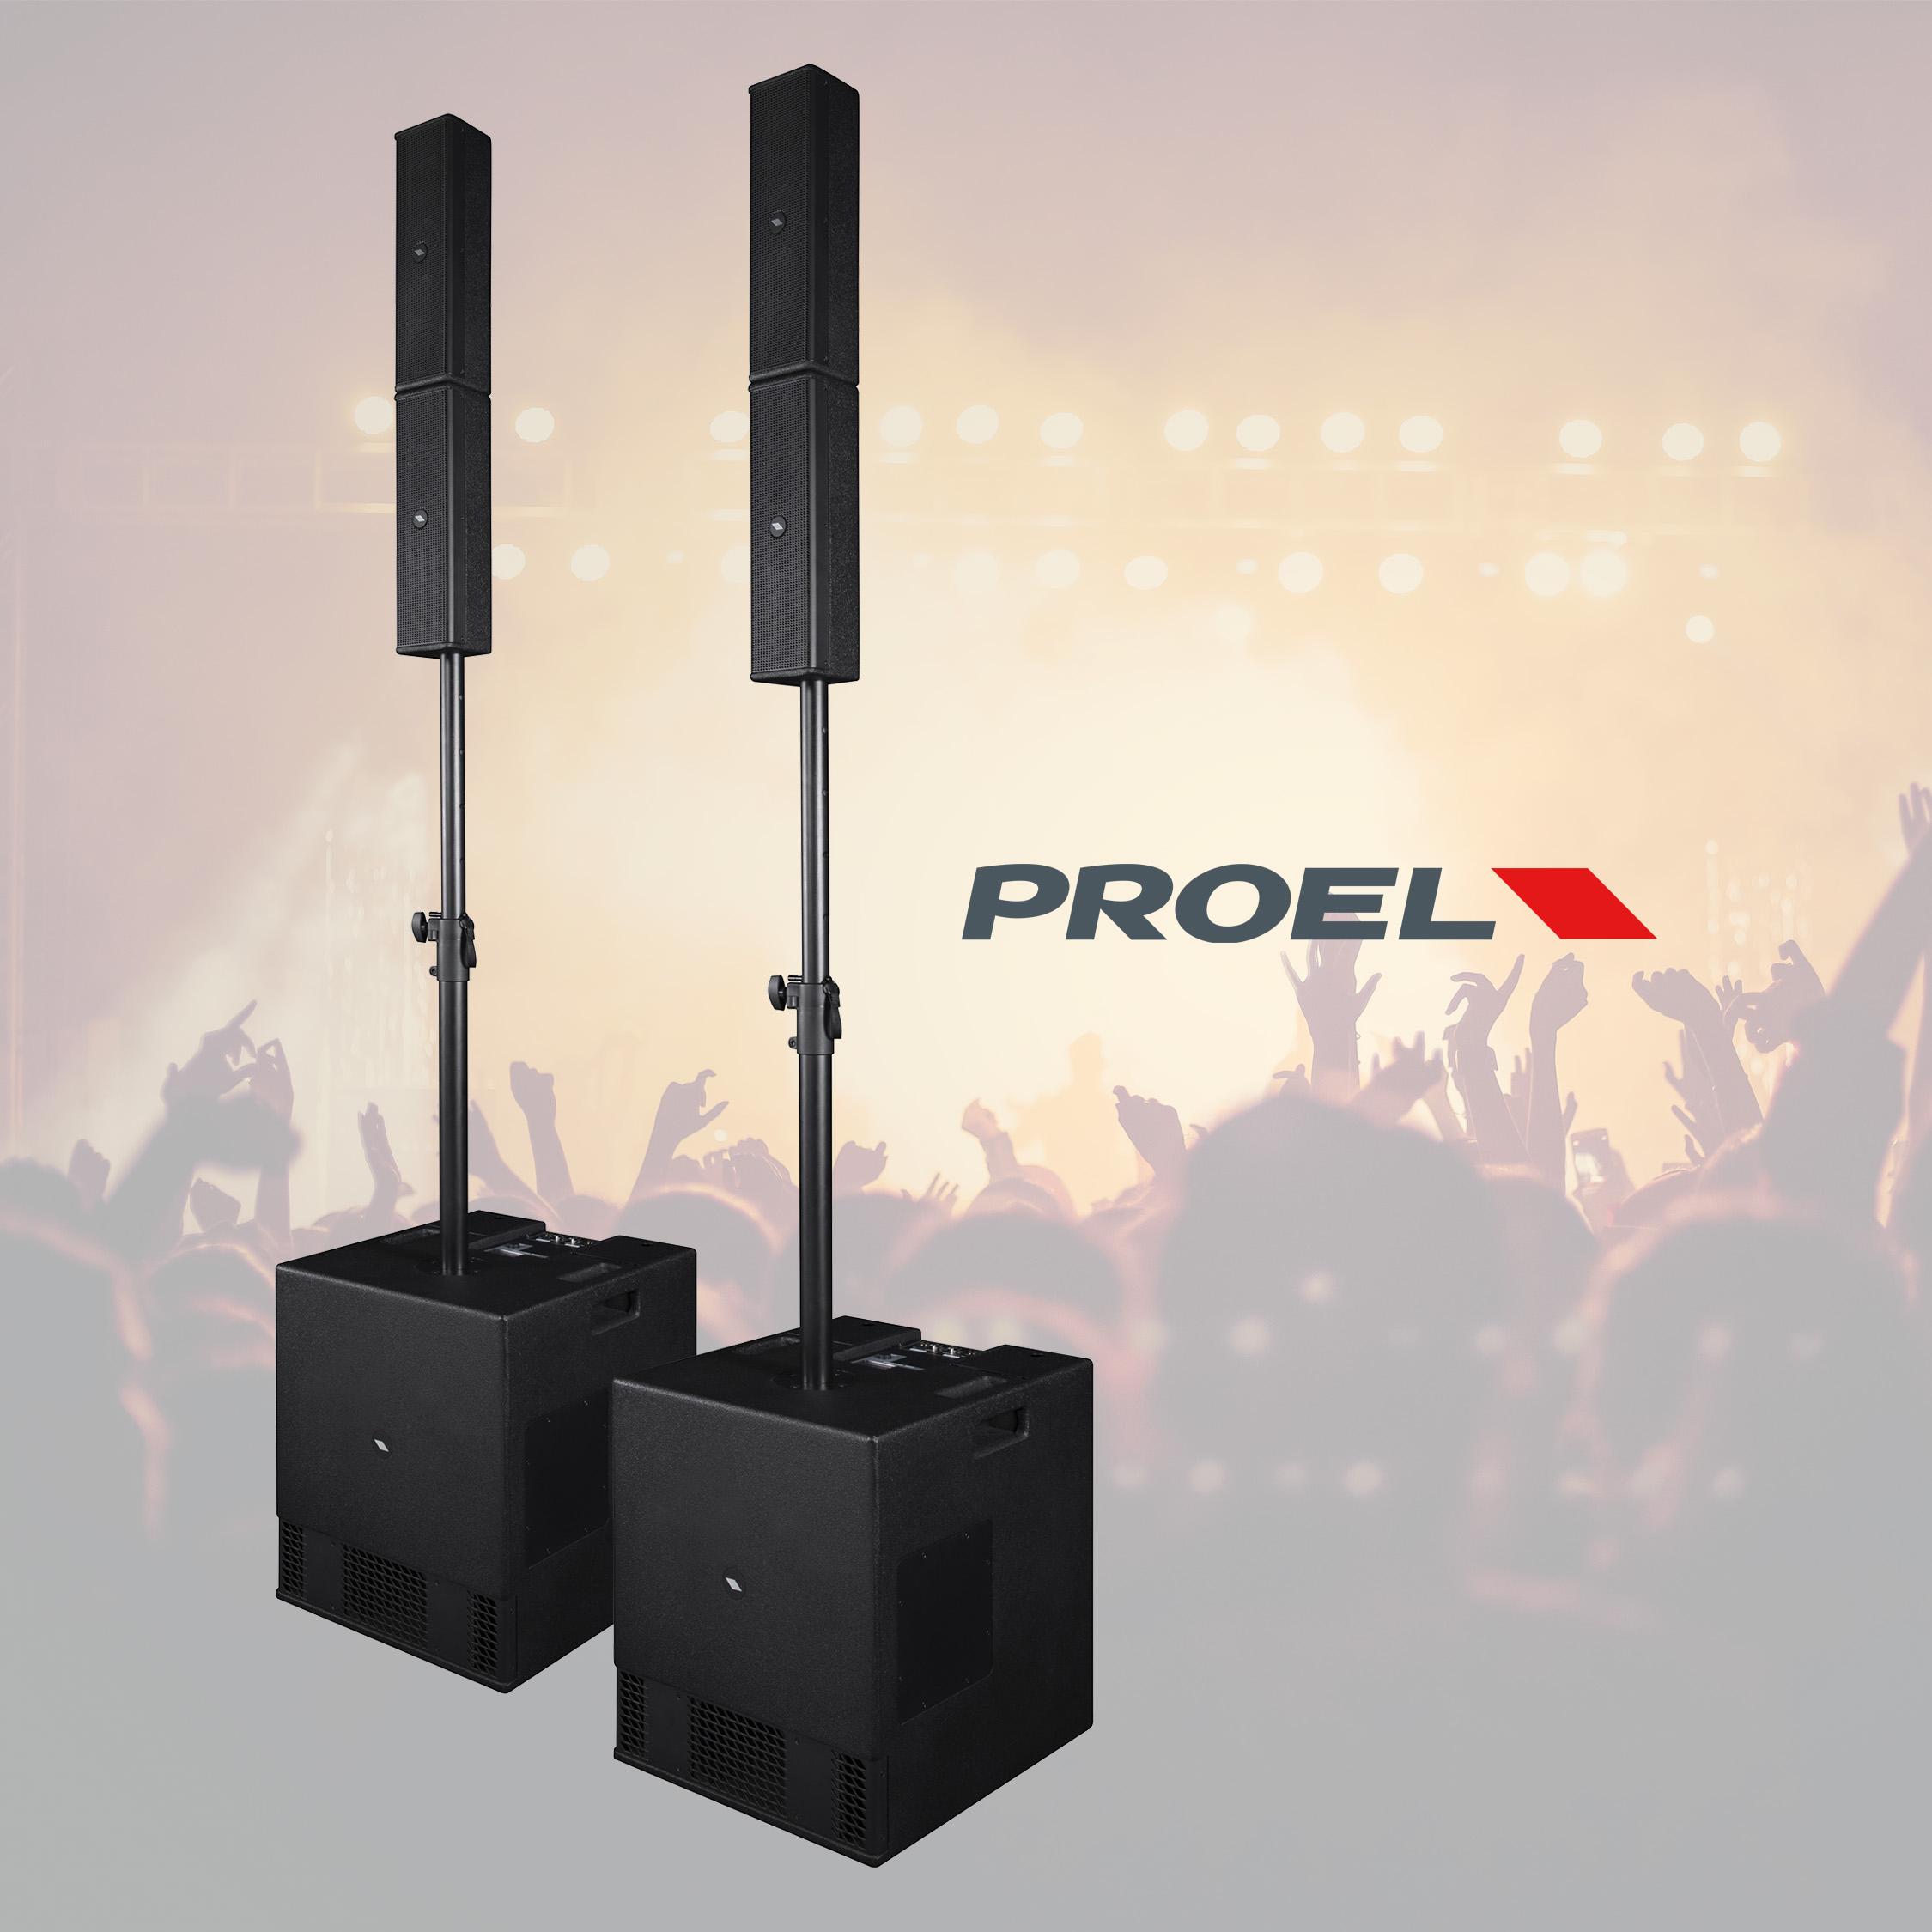 Proel SESSION4 – Kompakt portabelt Array-system